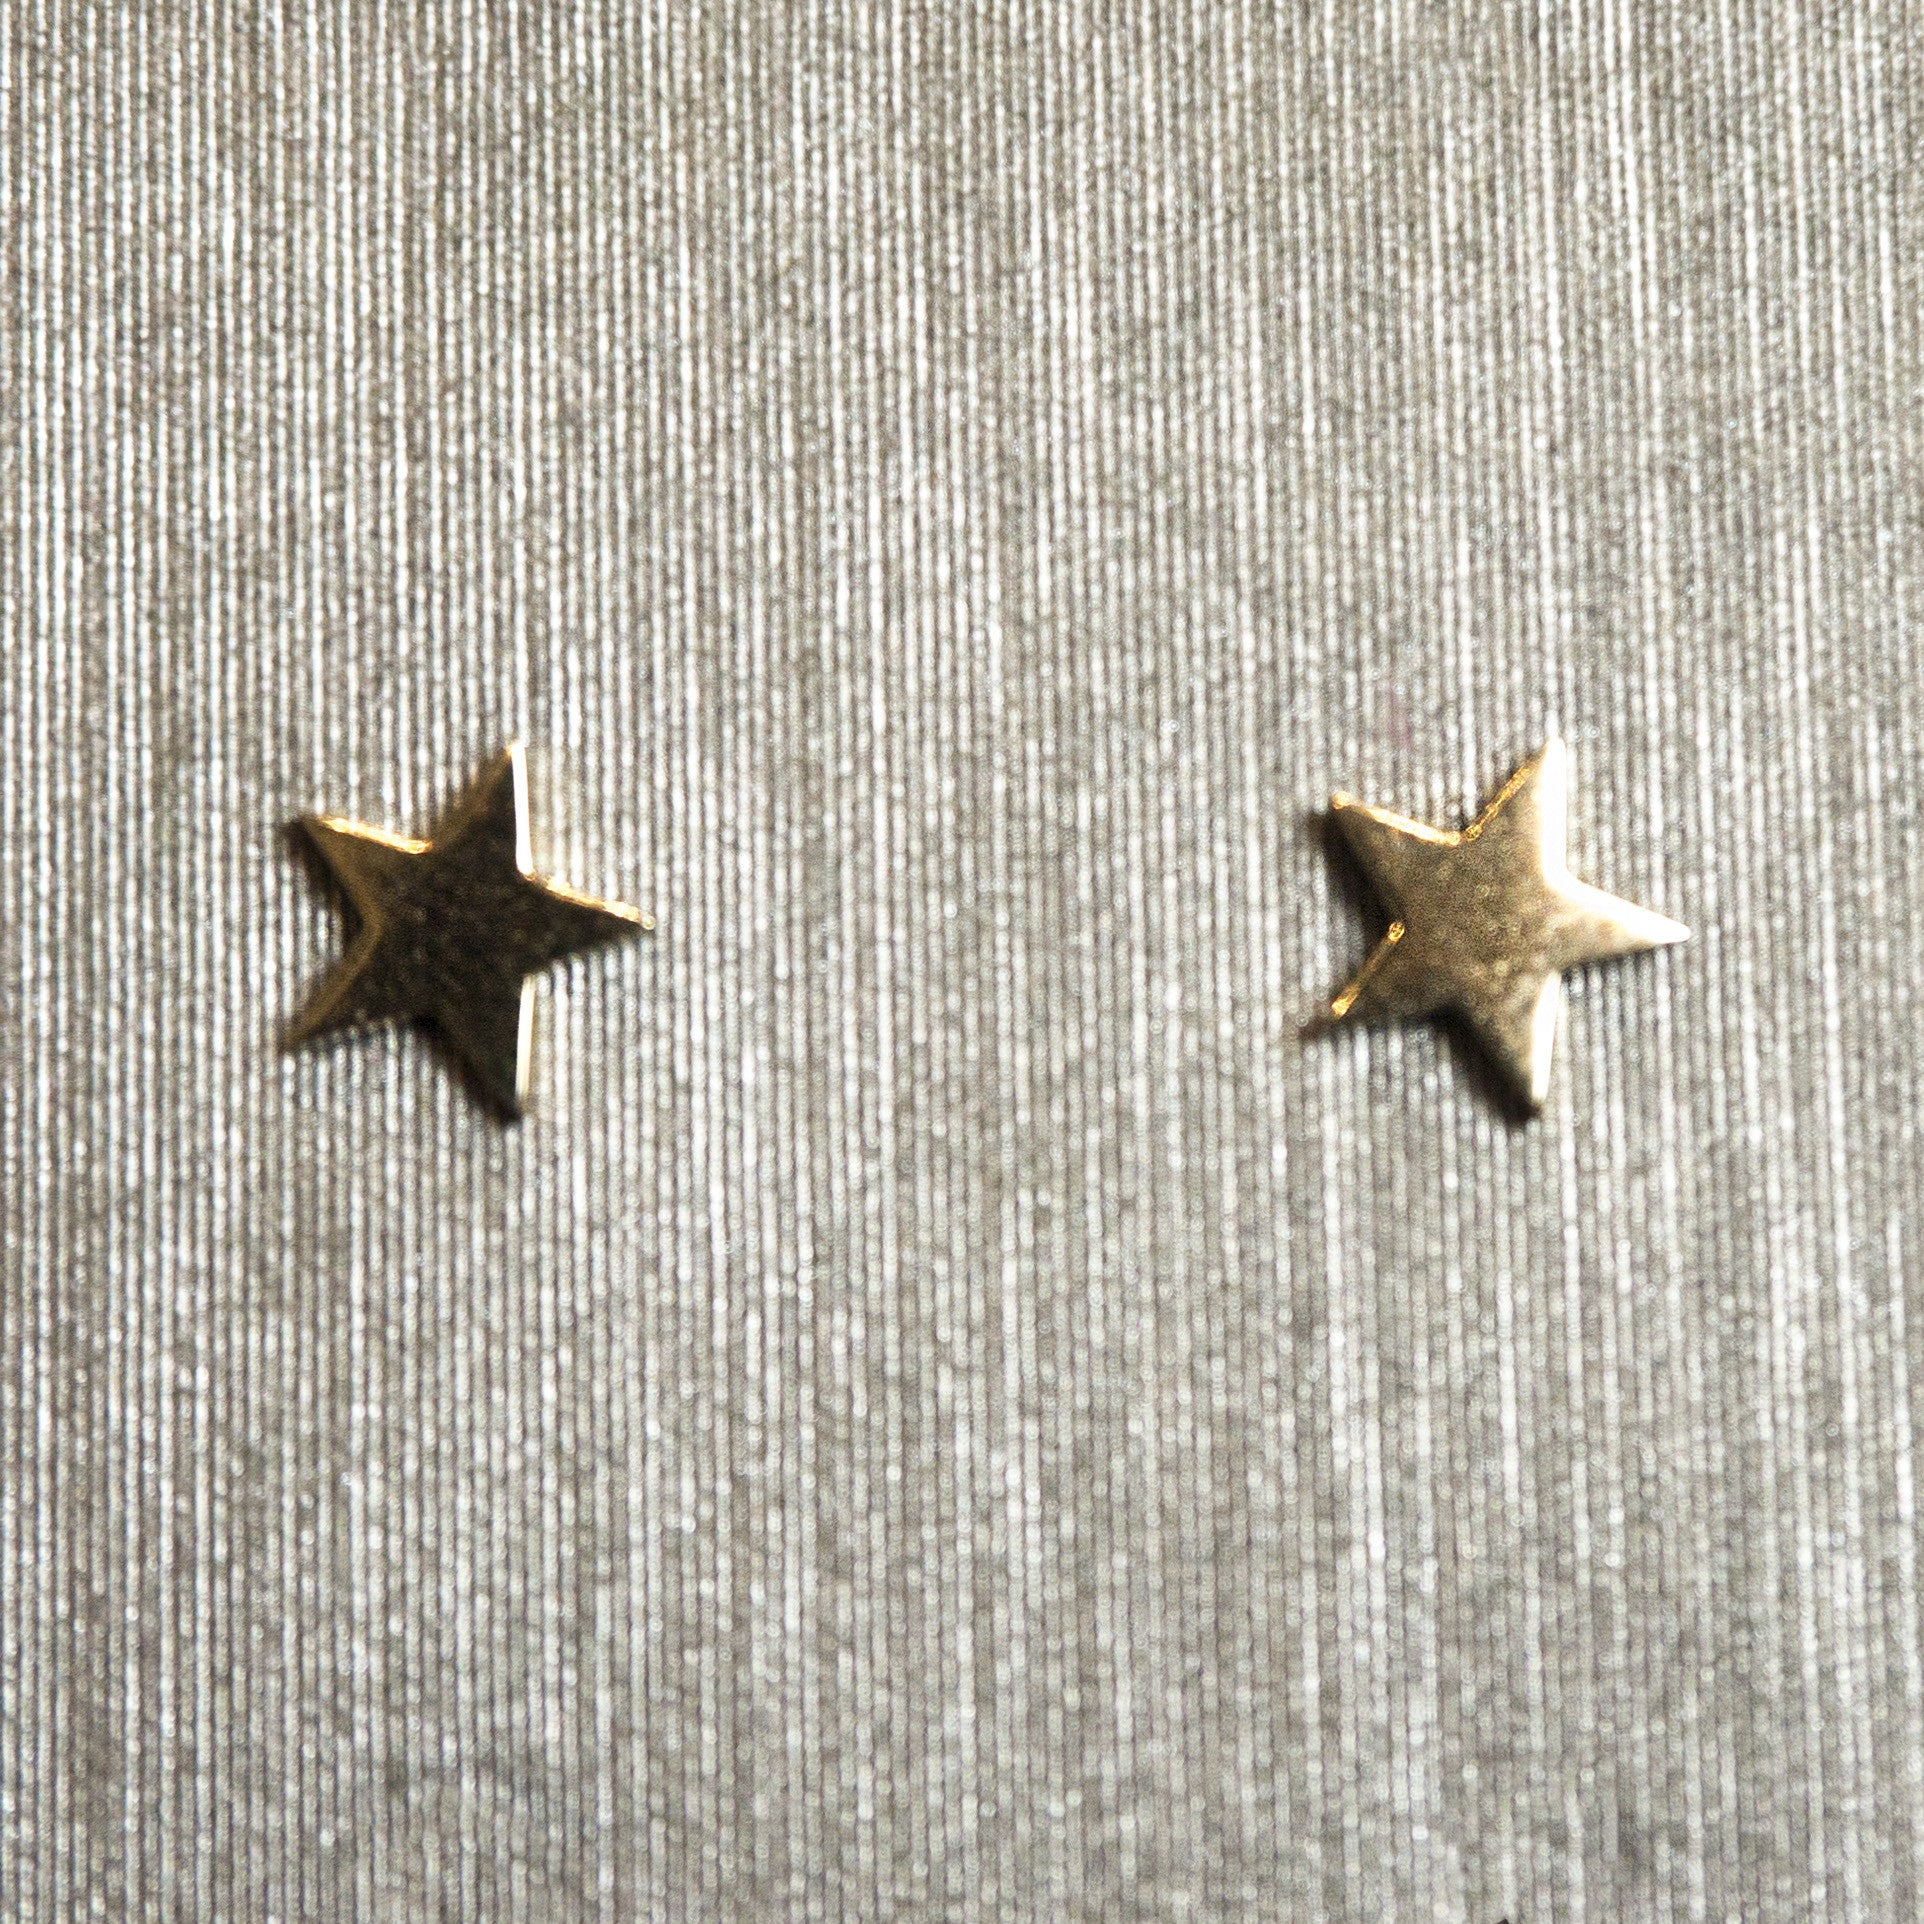 Rocks with Soul Gold Star Studs Yellow Gold